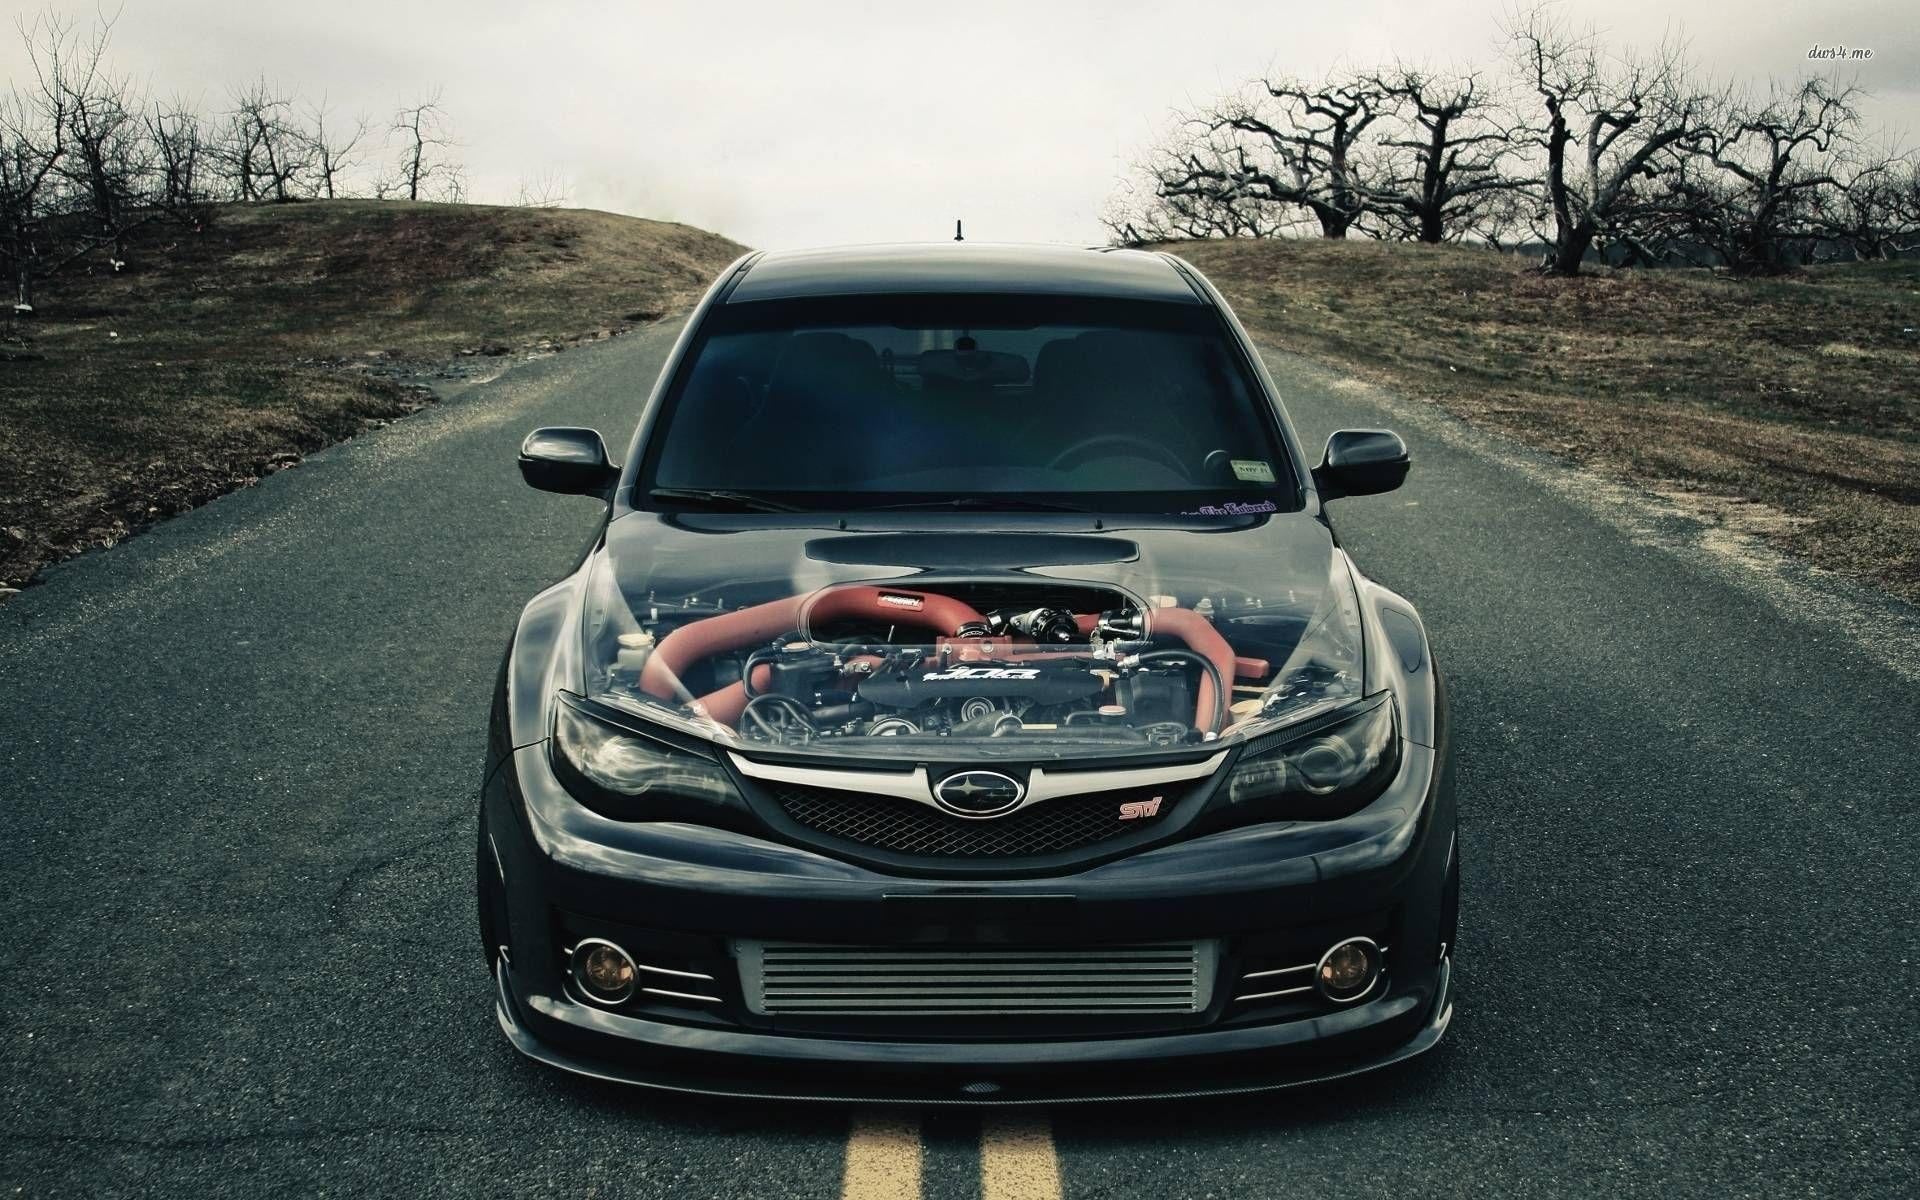 Subaru Impreza WRX STi wallpaper - Car wallpapers - # | subaruuuu ...